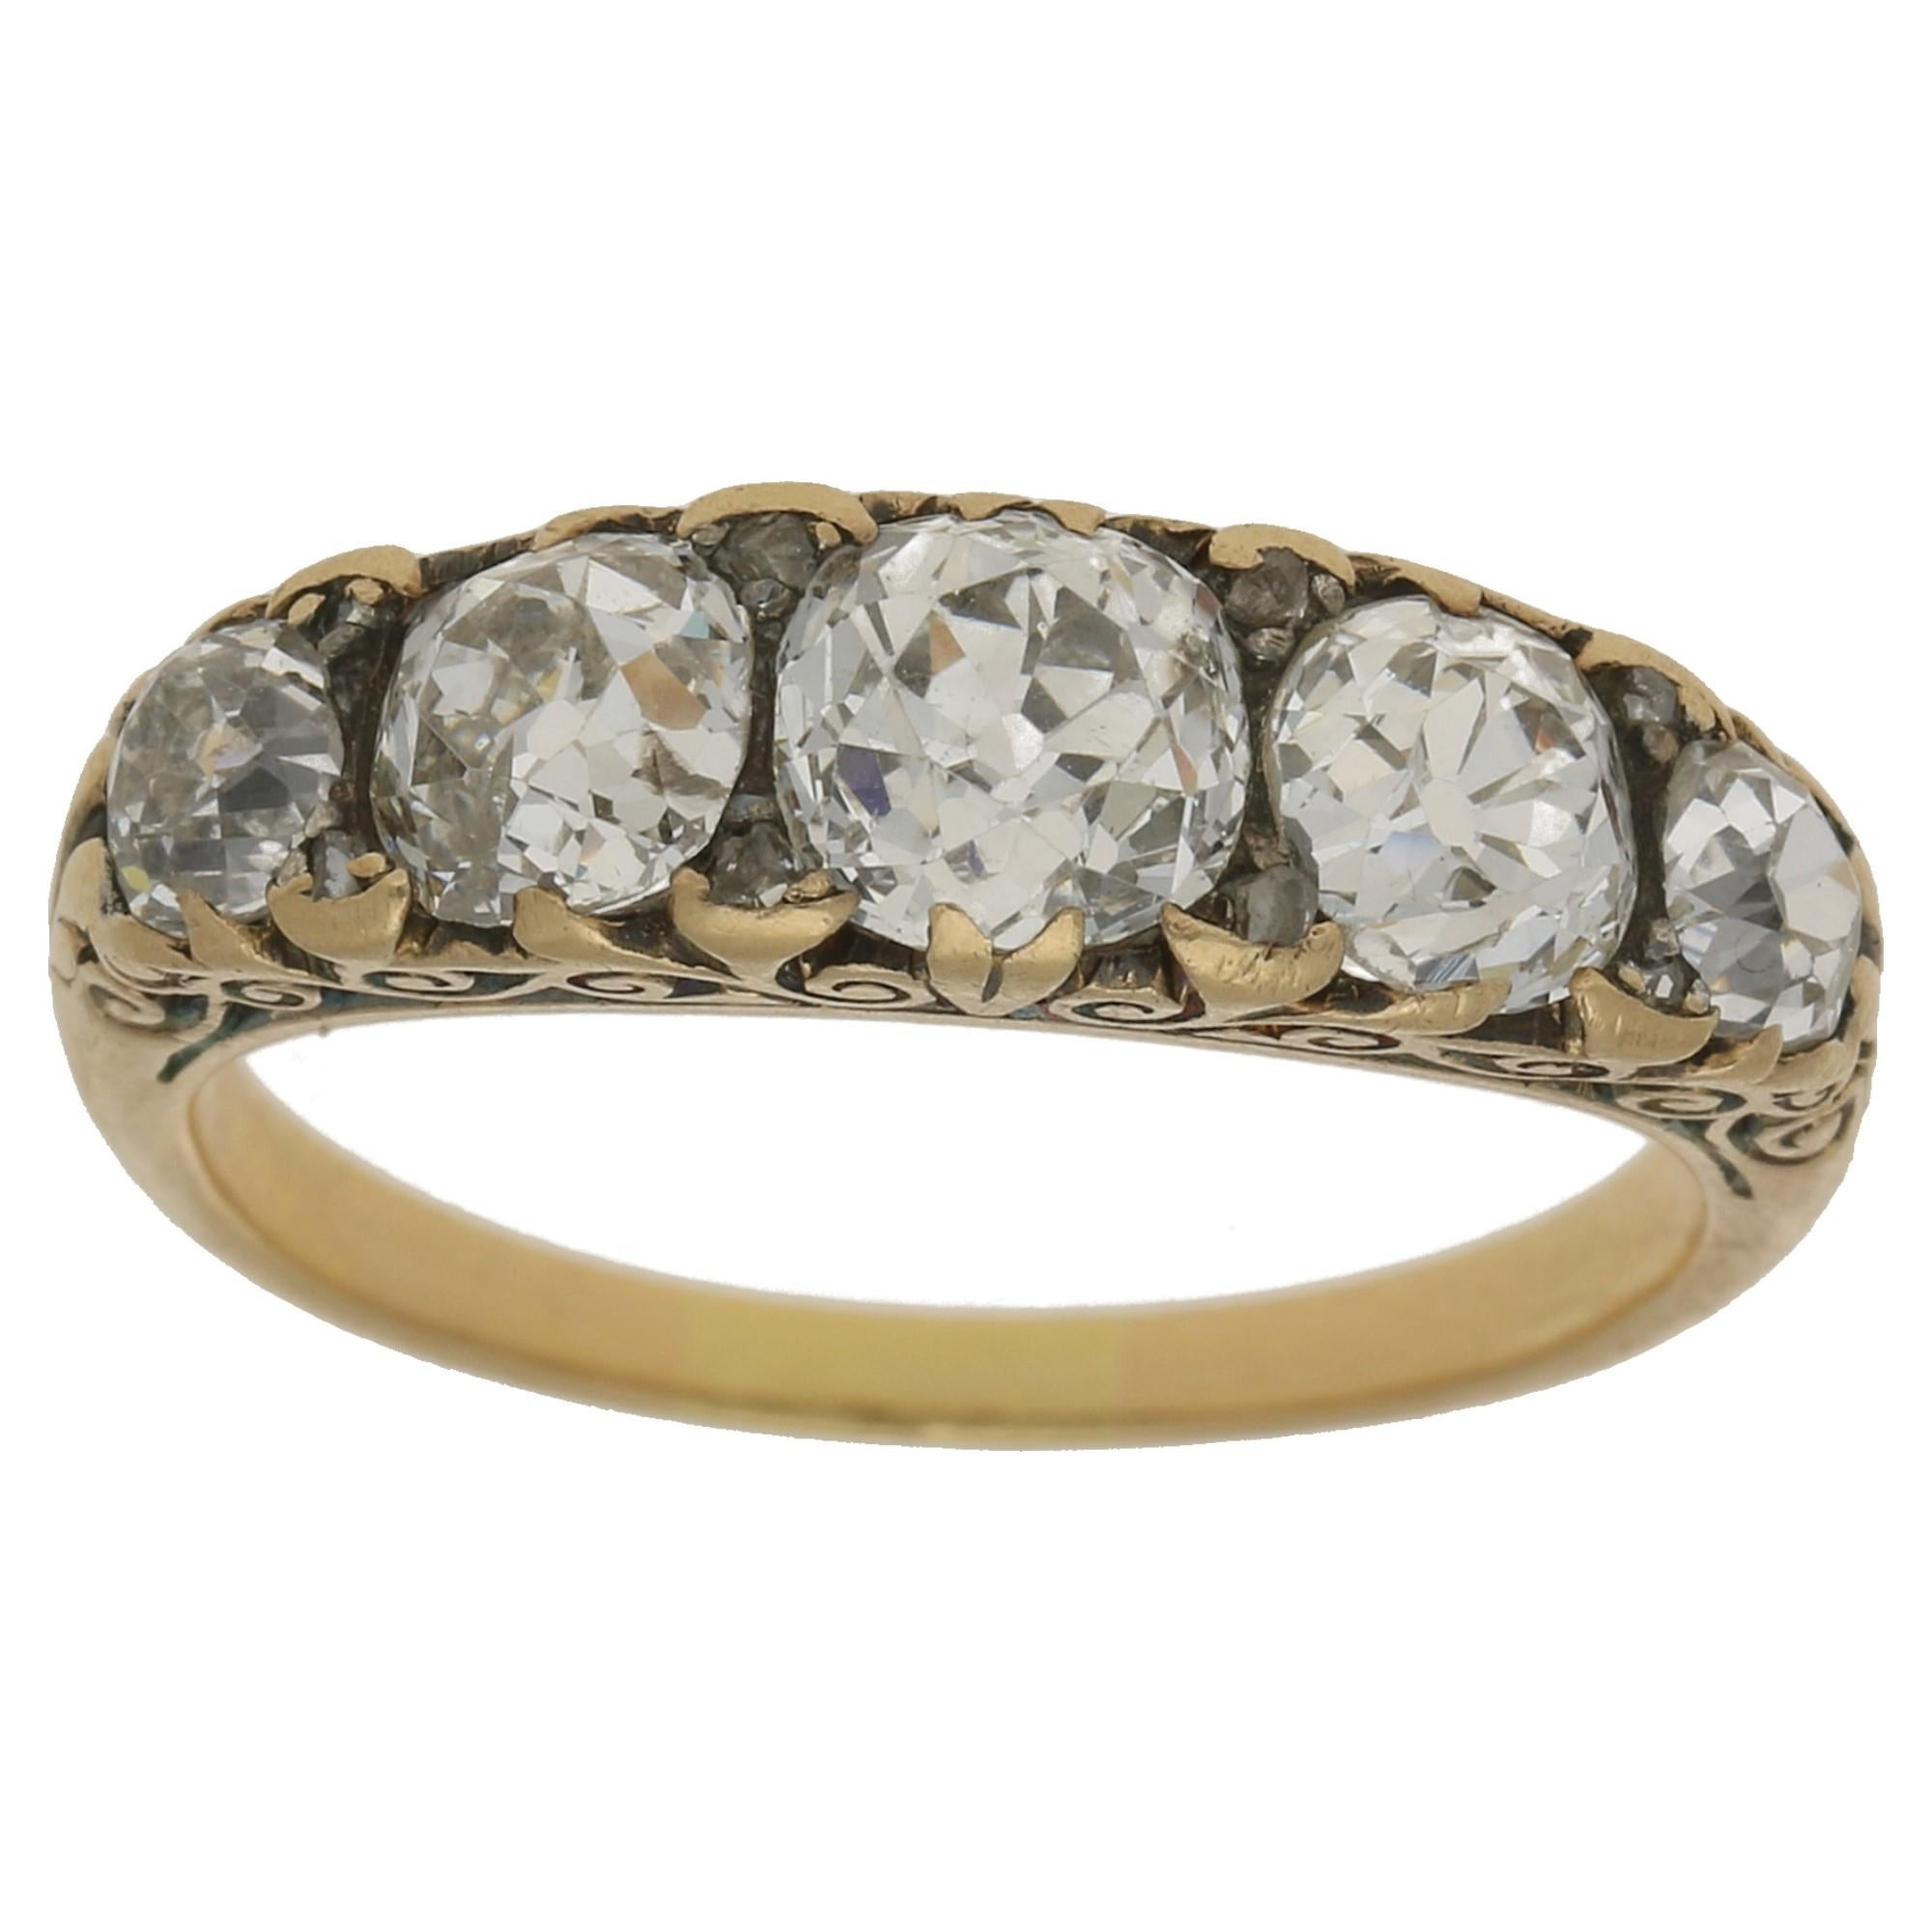 Victorian Five-Stone Old Cut Diamond Engagement Ring Set in Yellow Gold